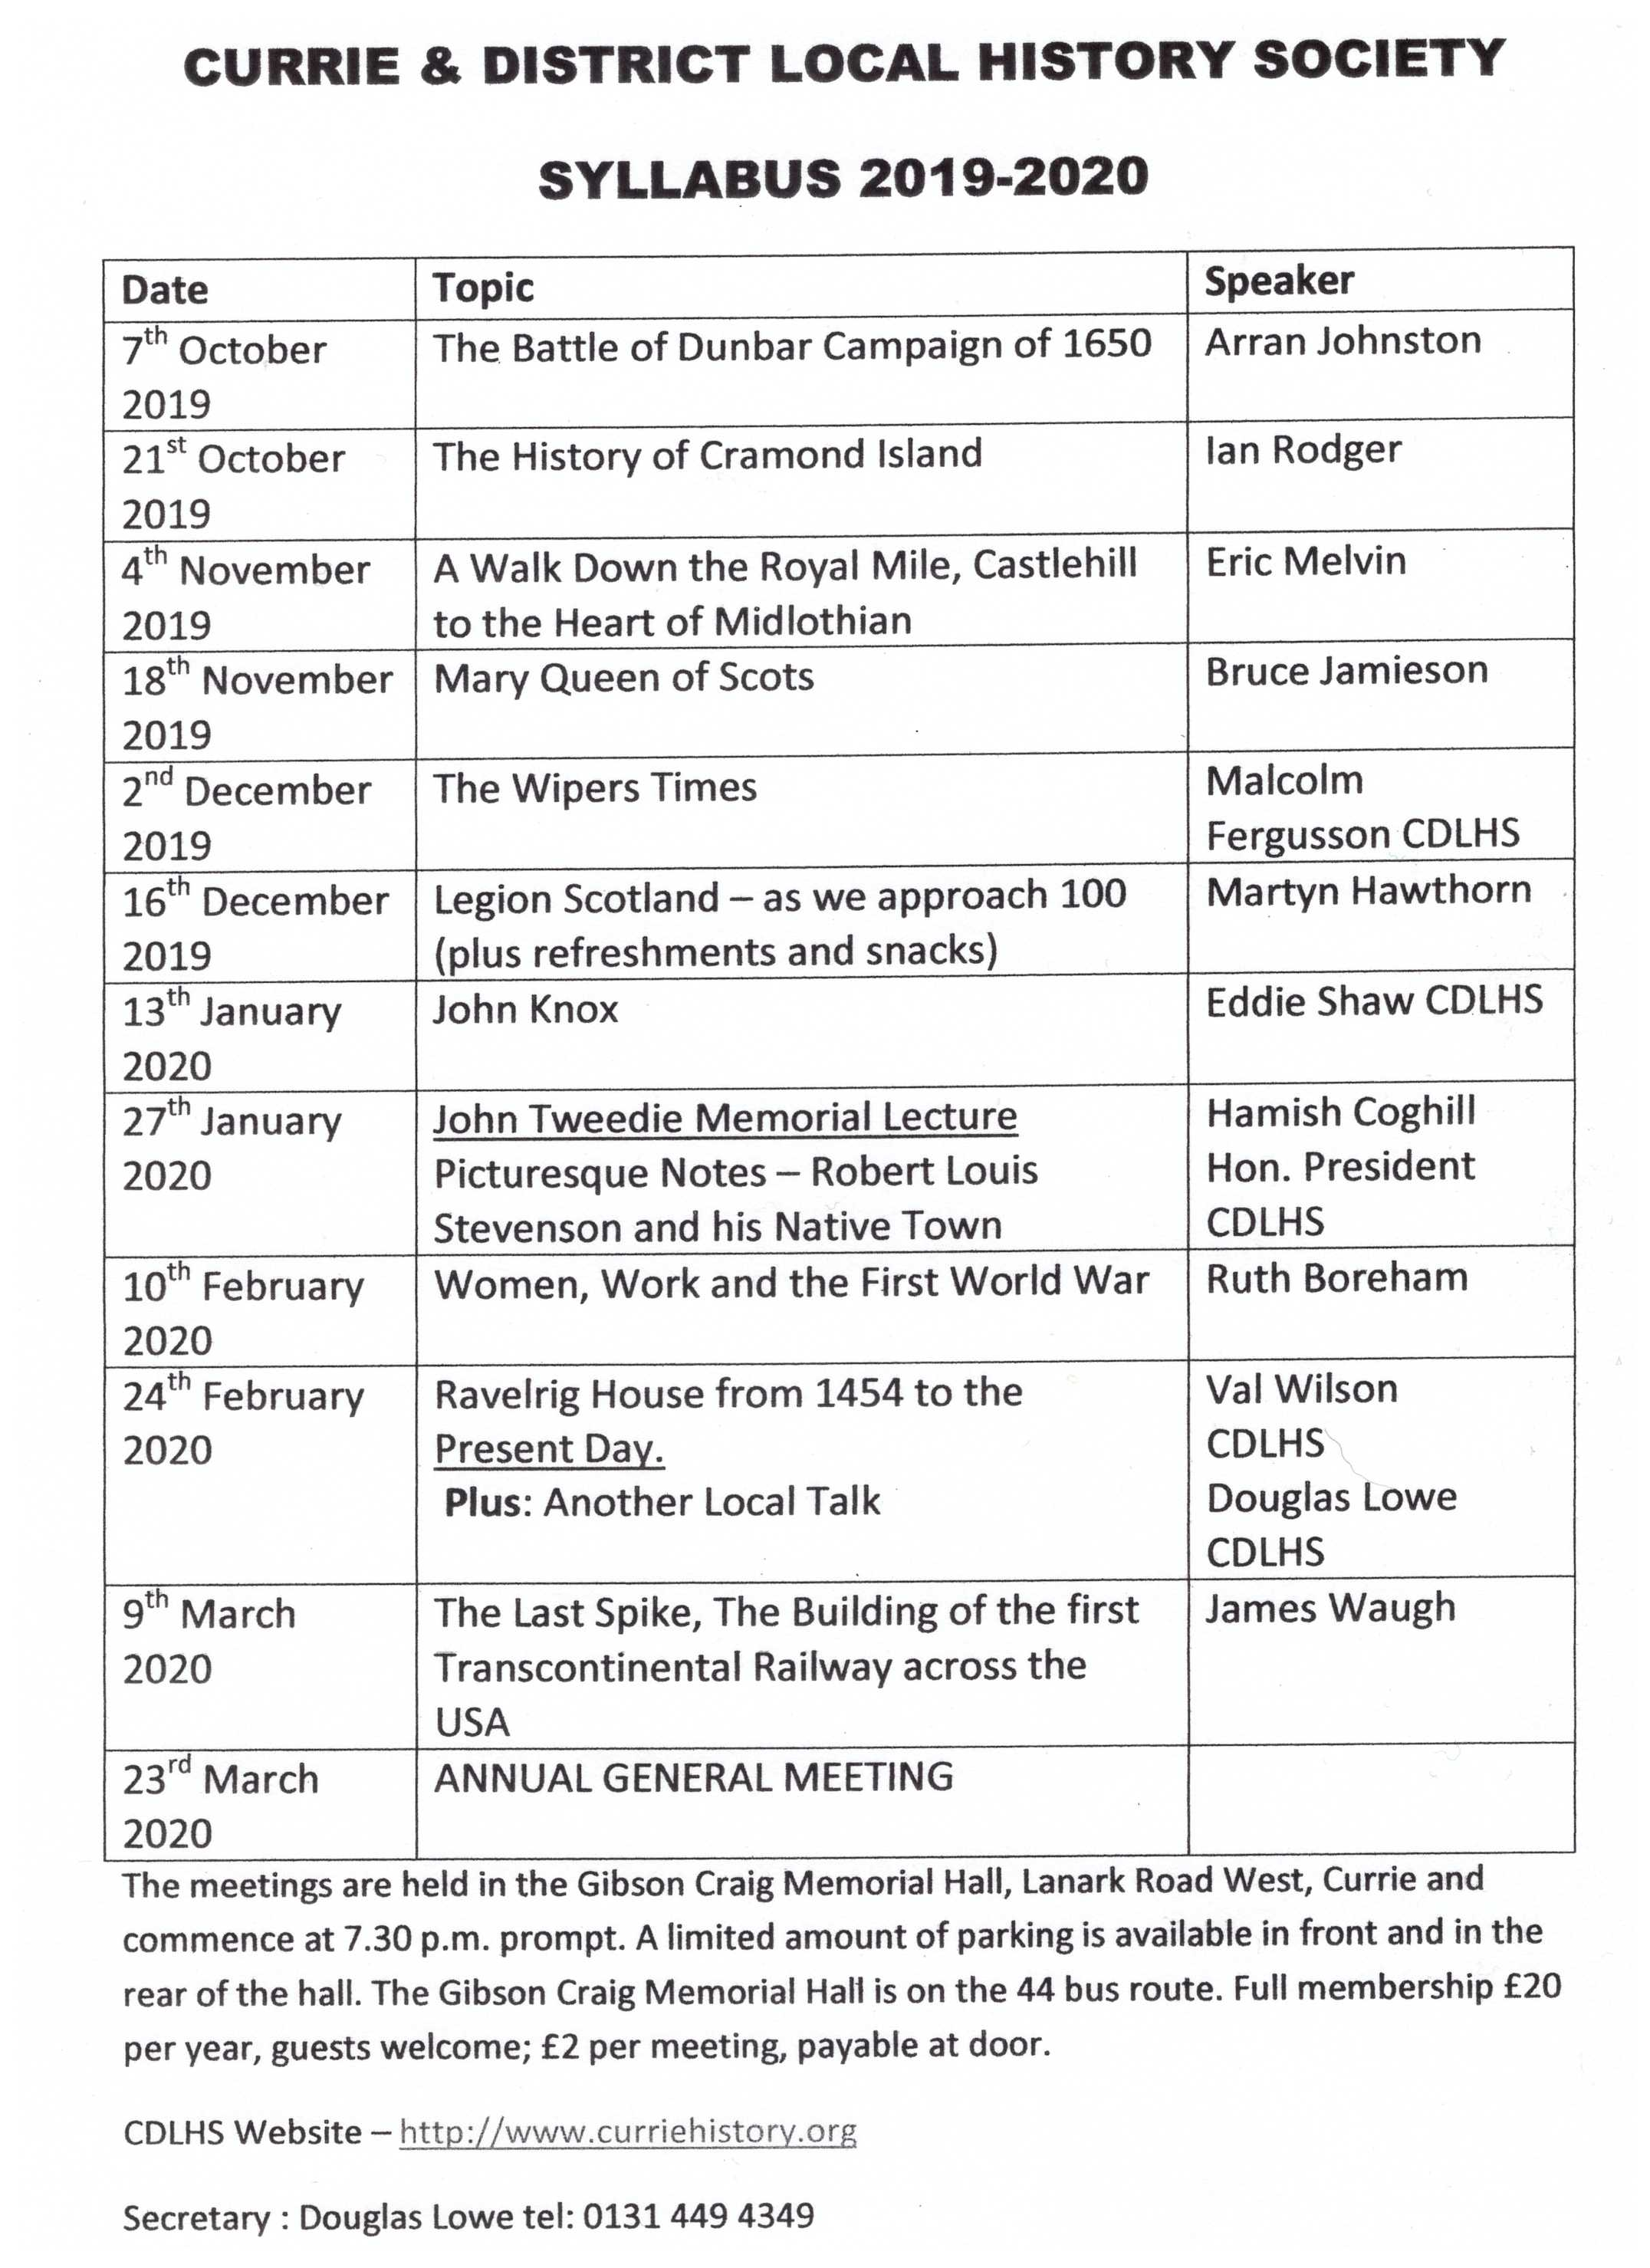 Curry and District Local History Society 2018-19 Syllabus